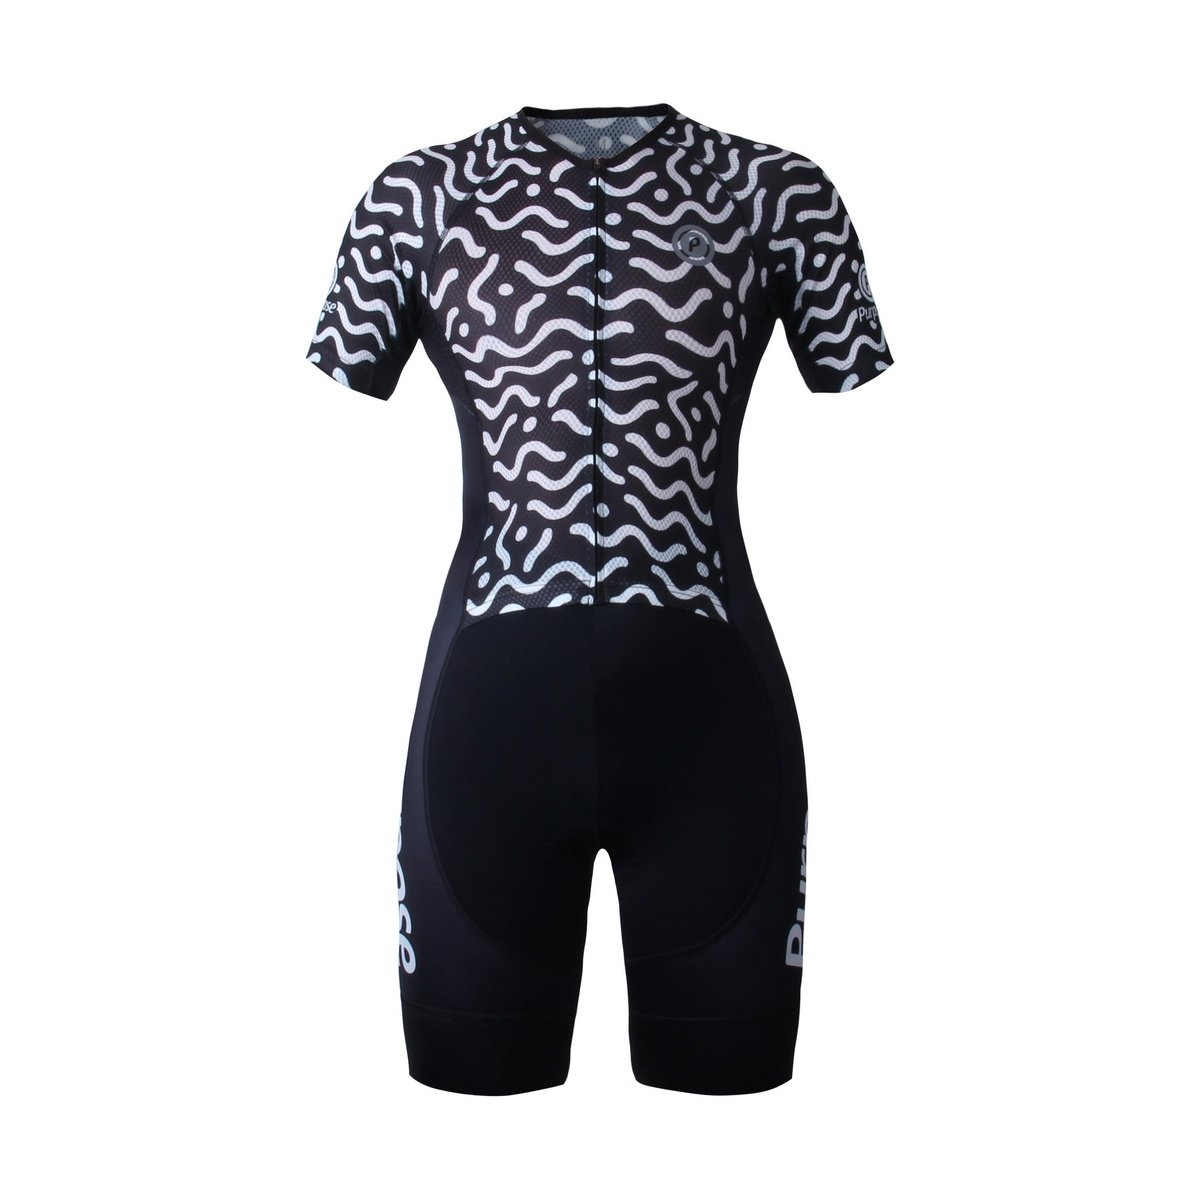 Purpose Flow Pro/Performance Women's Mesh Tri Suit (Waves Black and White, Sleeve)